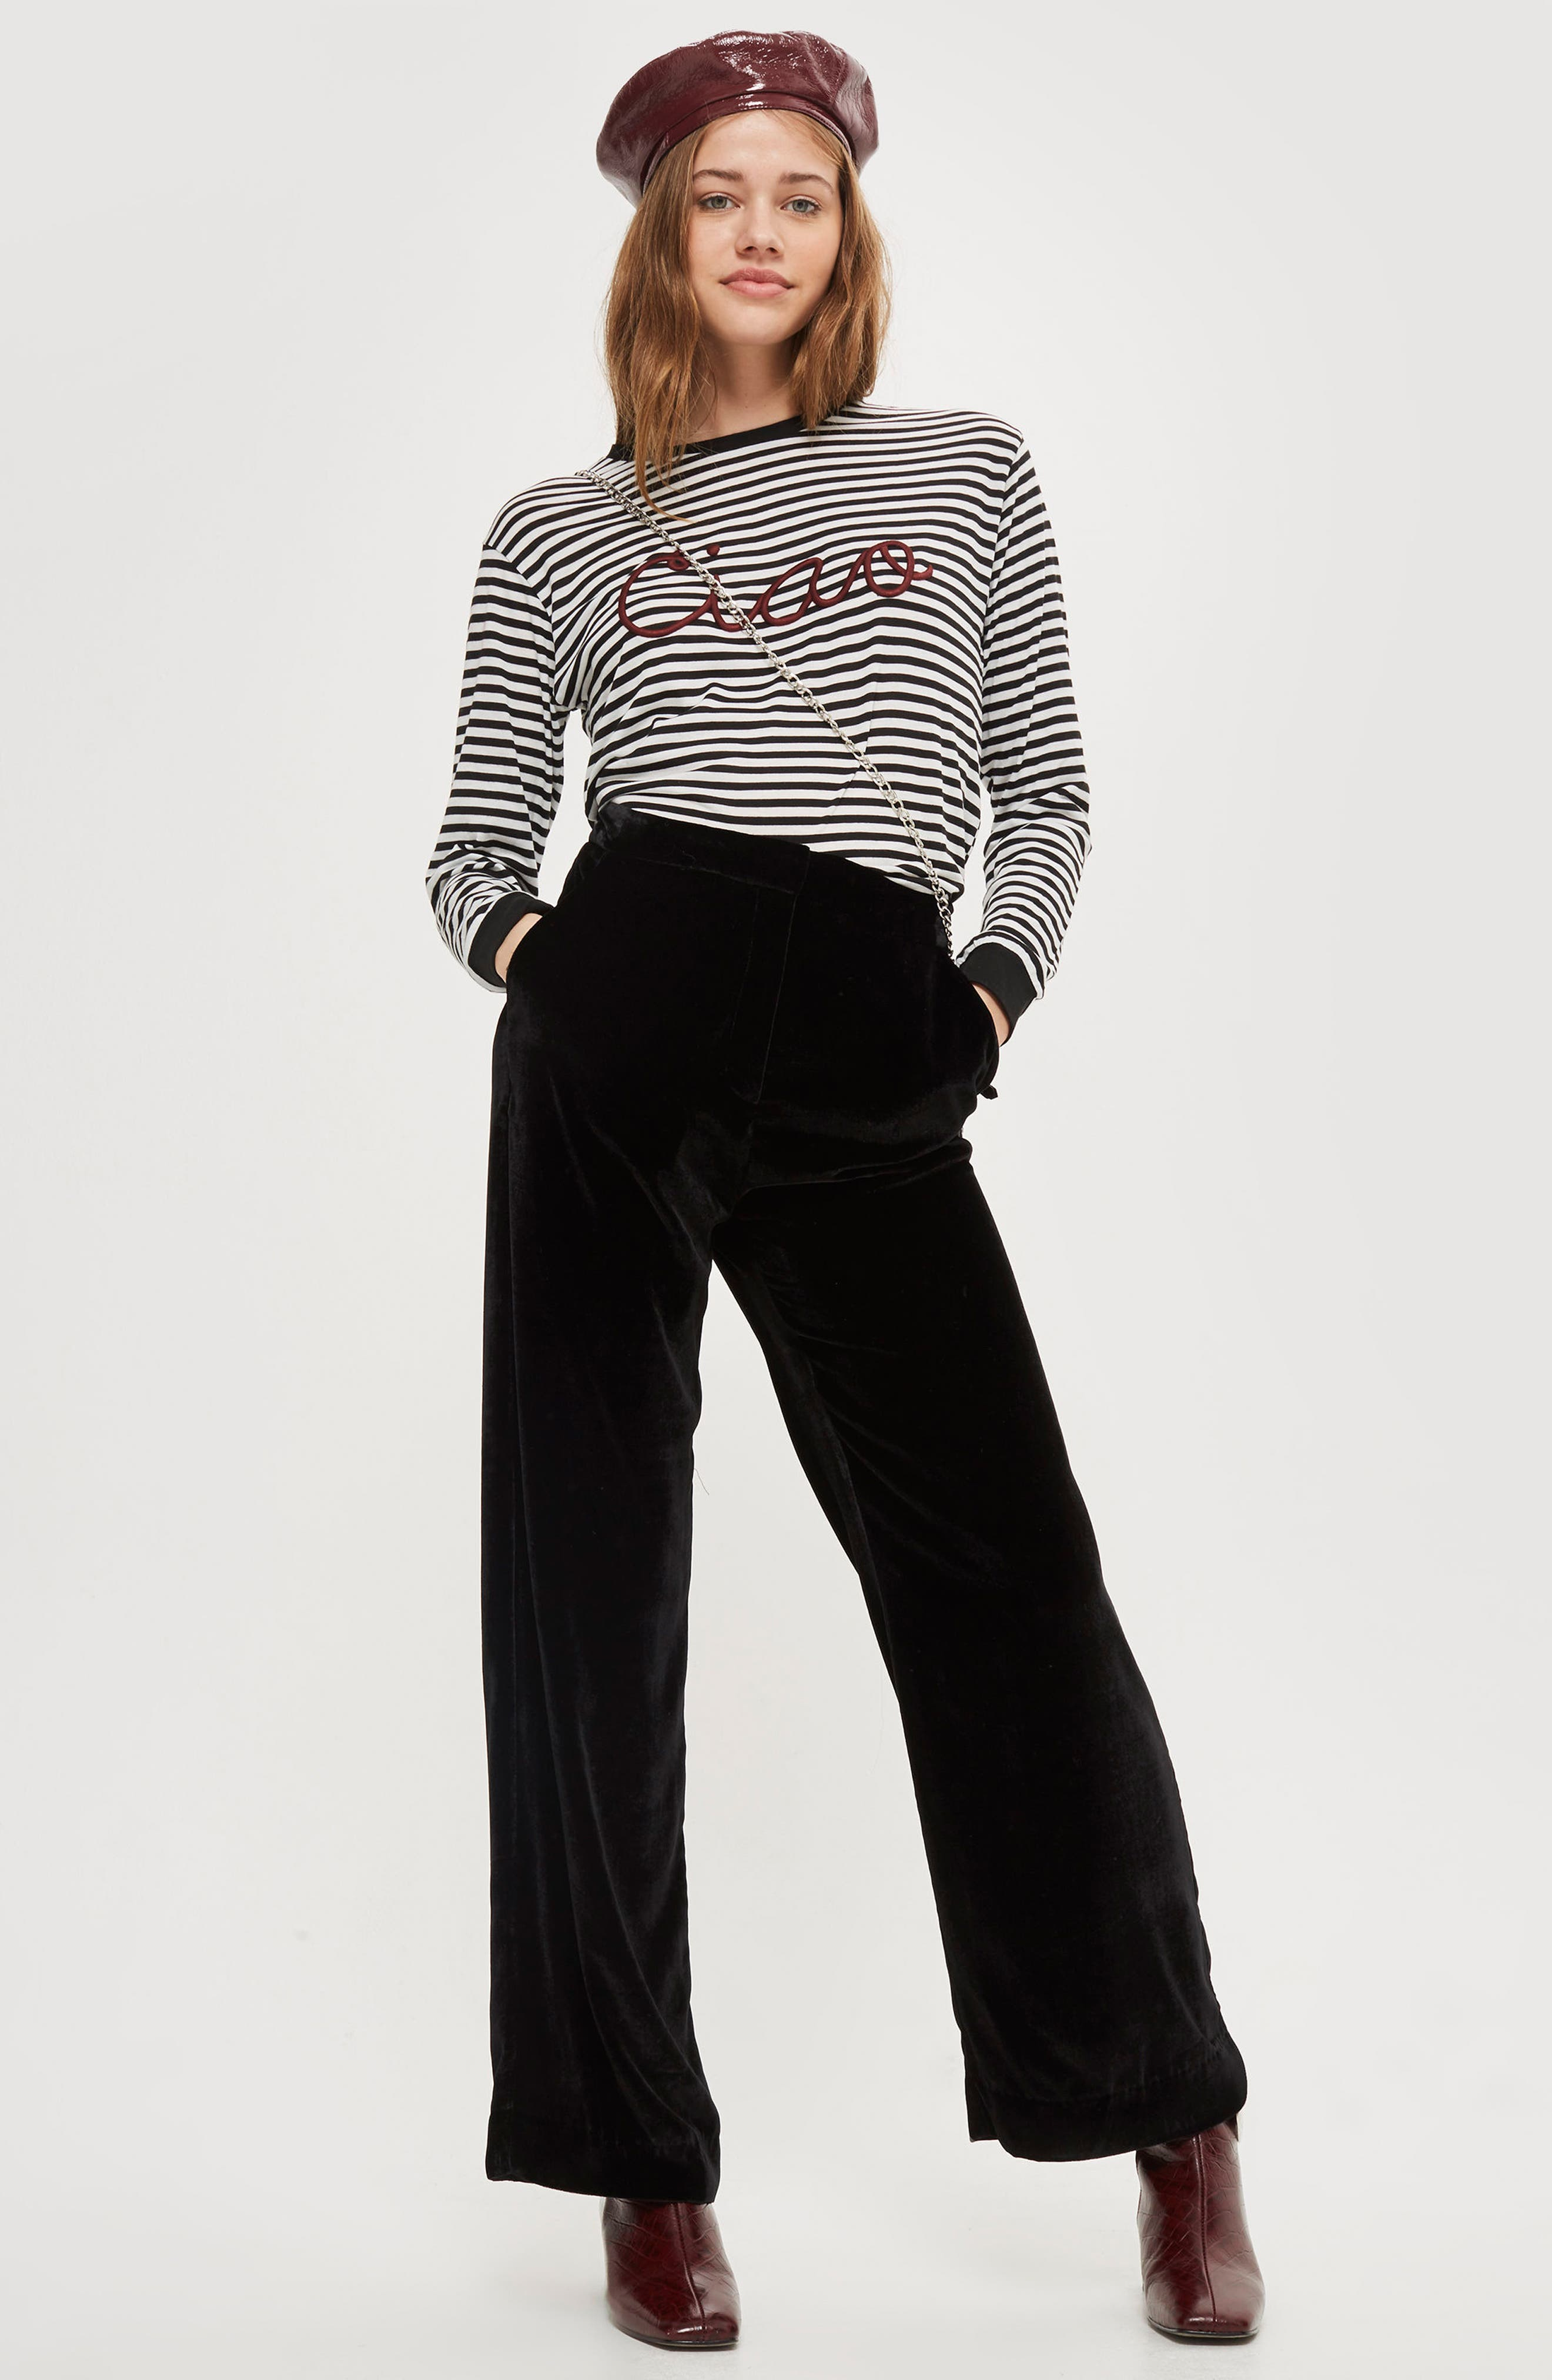 Ciao Embroidered Stripe Shirt,                             Alternate thumbnail 2, color,                             Black Multi